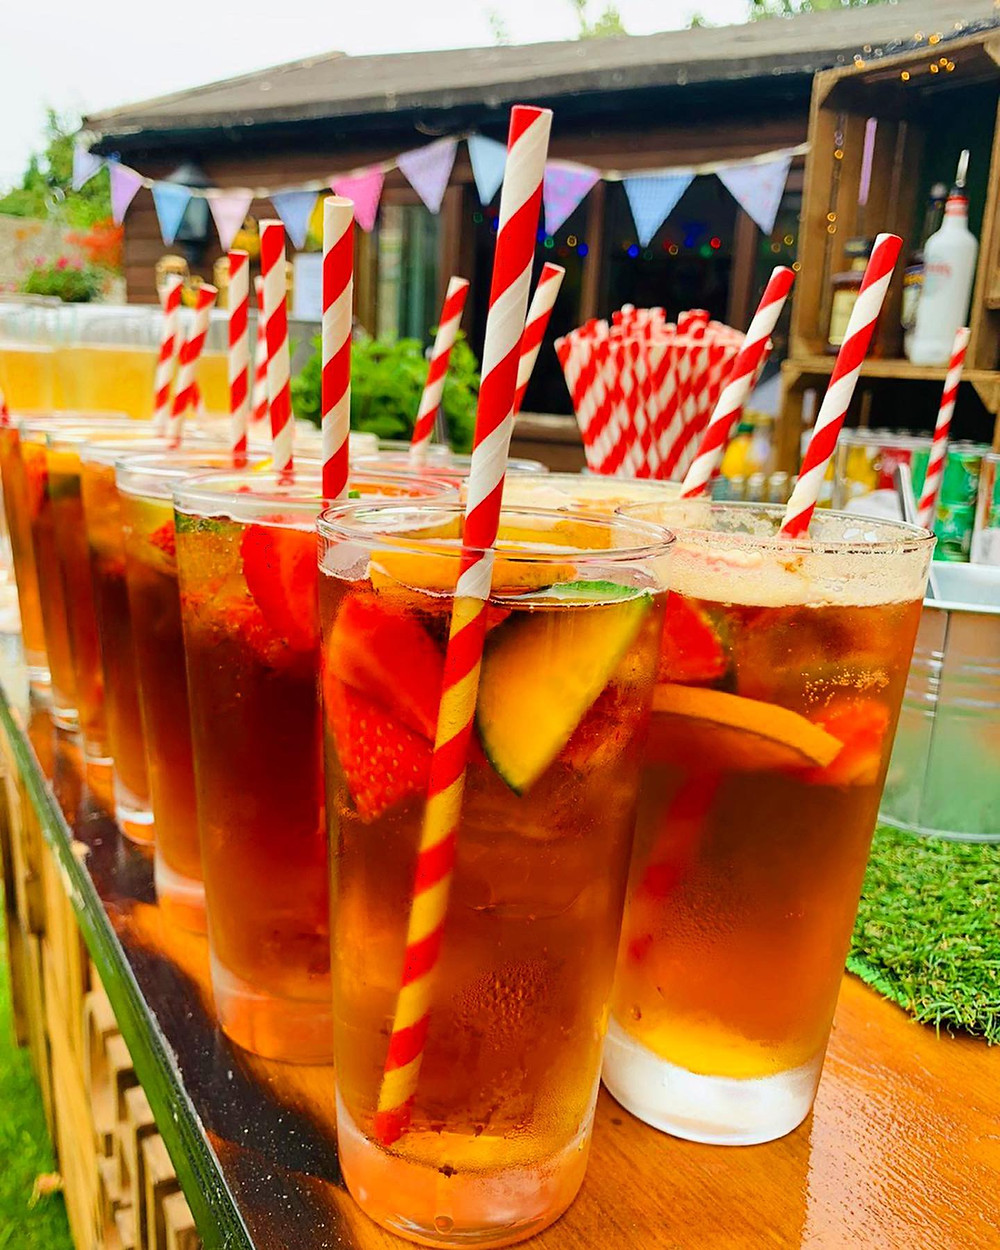 Pimms Welcome Drinks at Garden Party Wedding in Margate, Kent